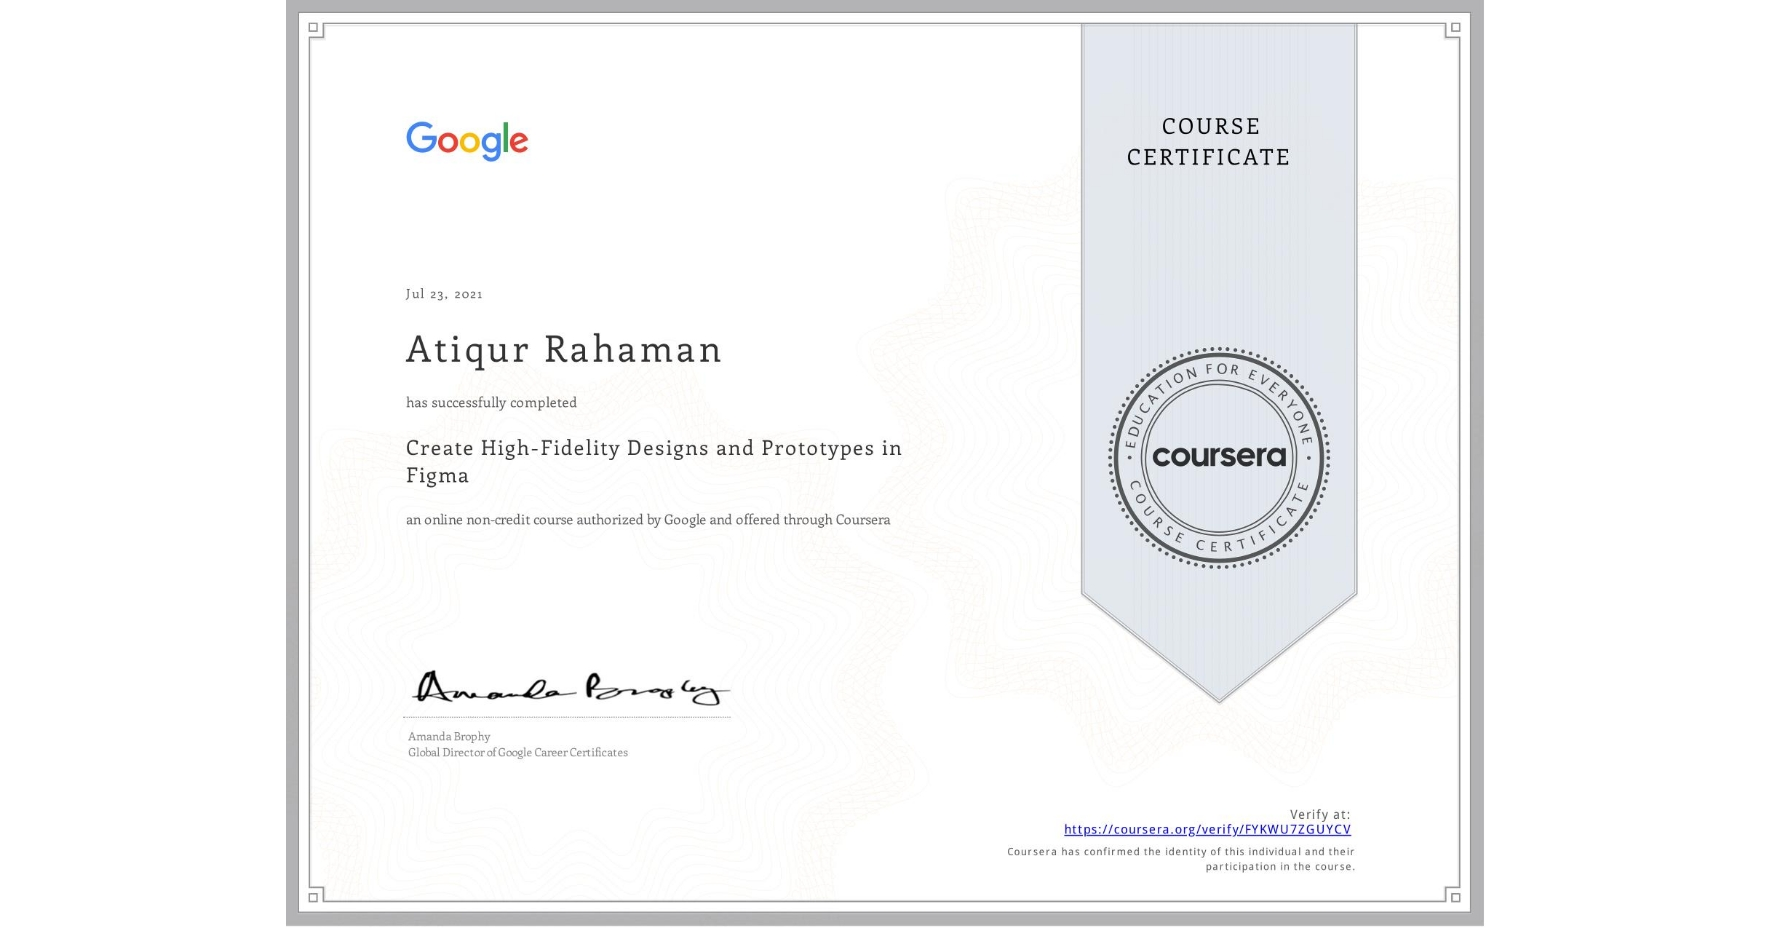 View certificate for Atiqur Rahaman, Create High-Fidelity Designs and Prototypes in Figma, an online non-credit course authorized by Google and offered through Coursera